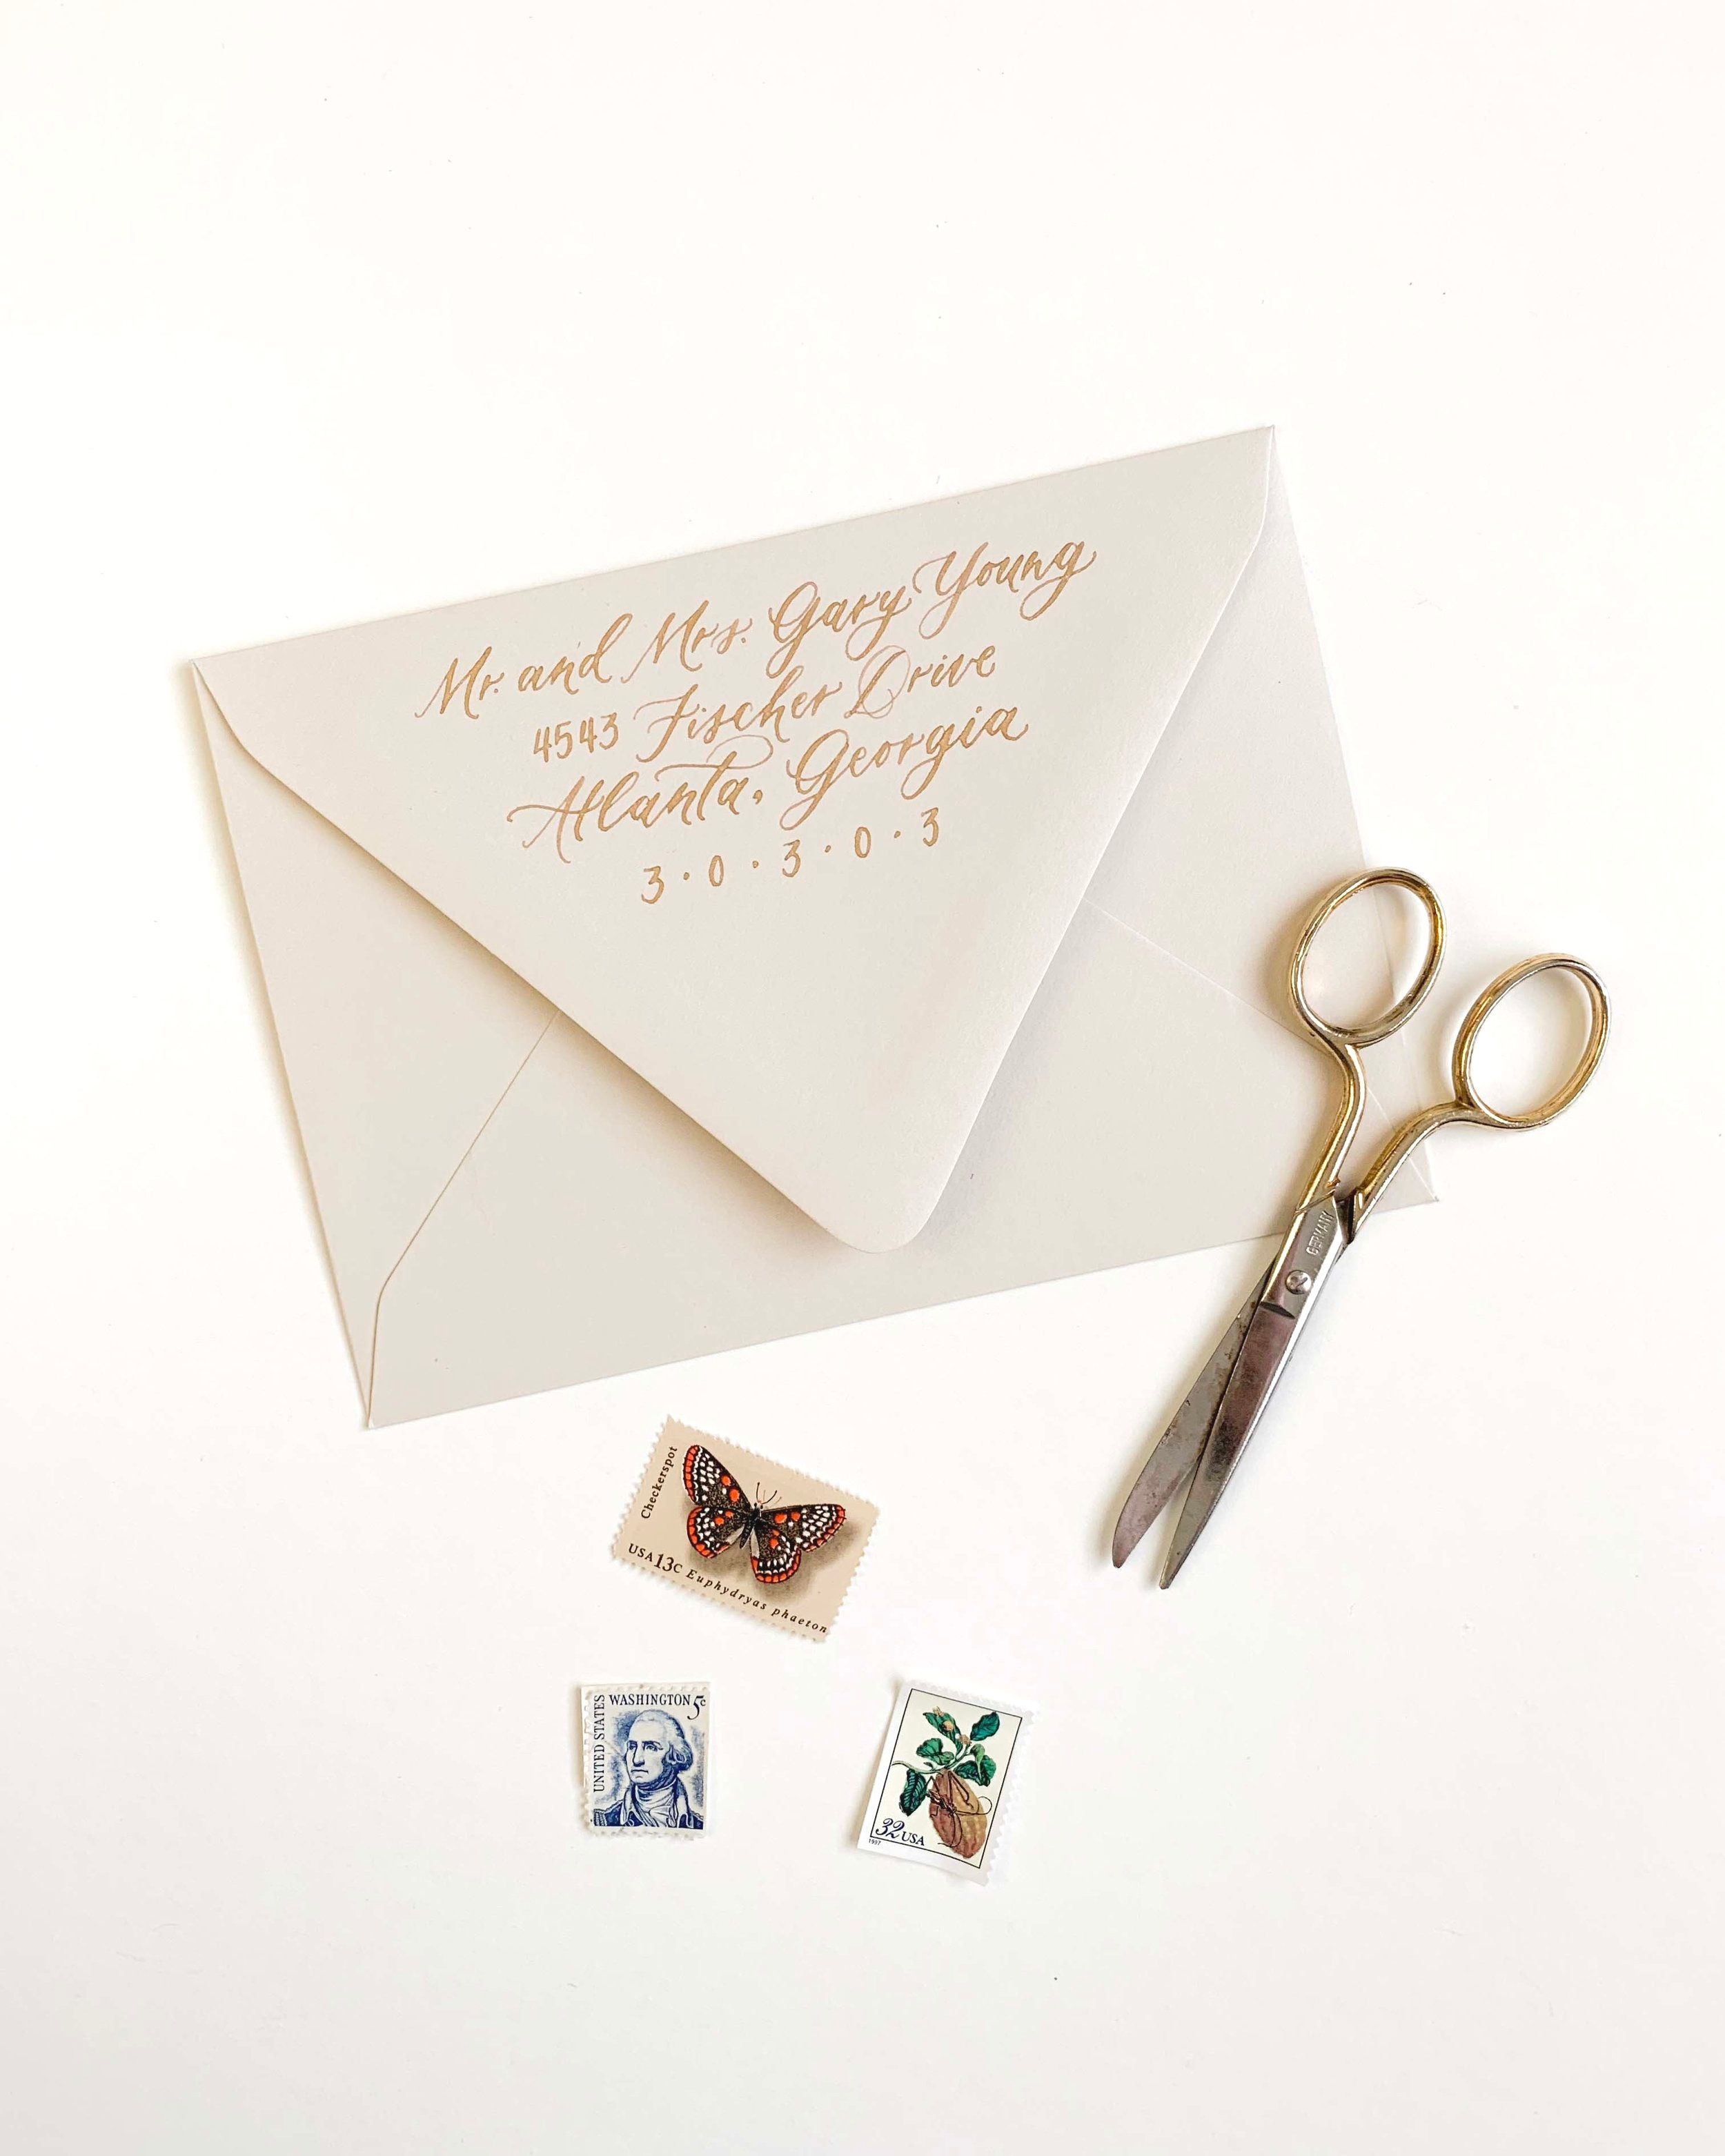 Fine Art Calligraphy Envelope Addressing for Wedding Invitations by Caitlin O'Bryant Design